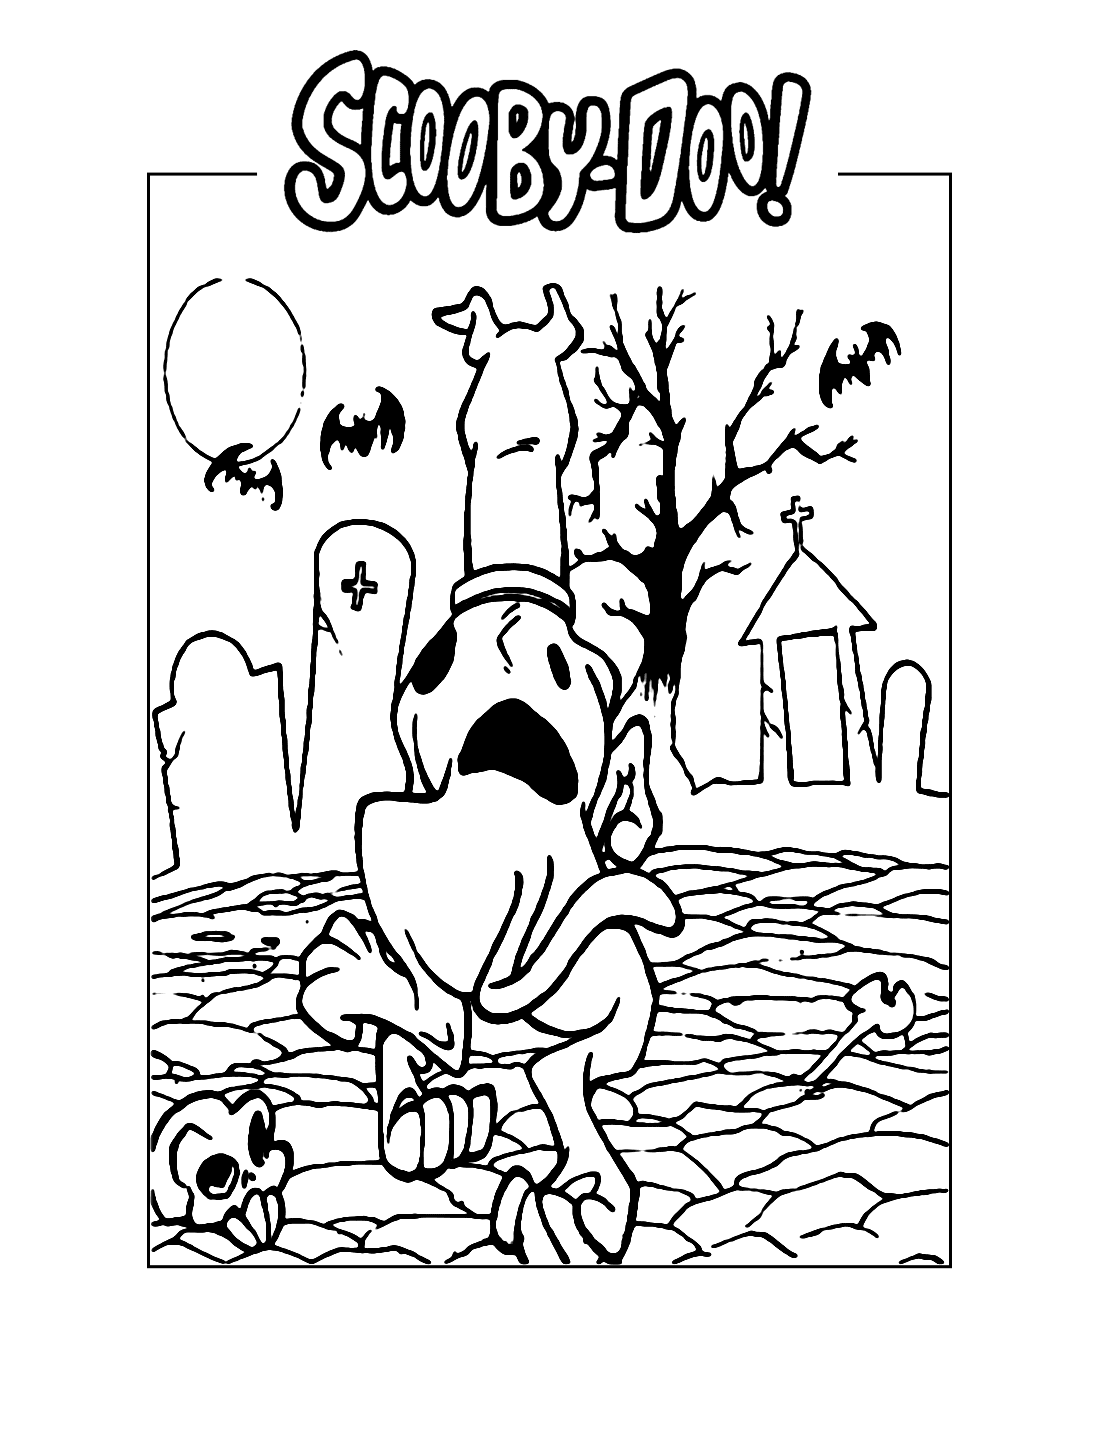 Spooky Scooby Doo Coloring Page